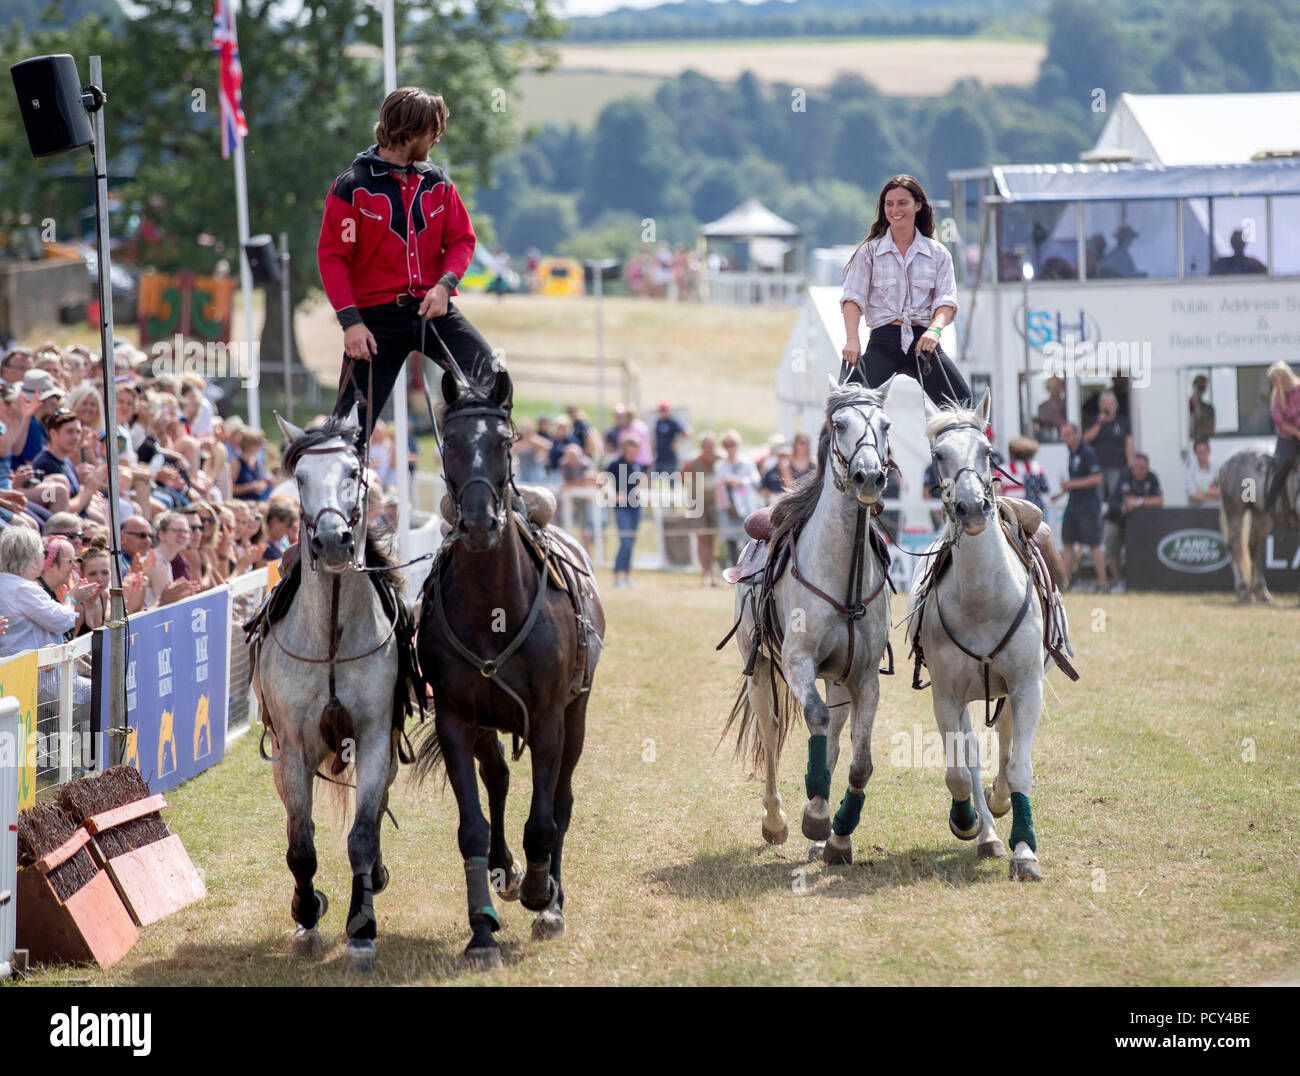 Members of the Devil's Horsemen perform in the main arena at the Festival of British Eventing at Gatcombe Park, Gloucestershire. - Stock Image